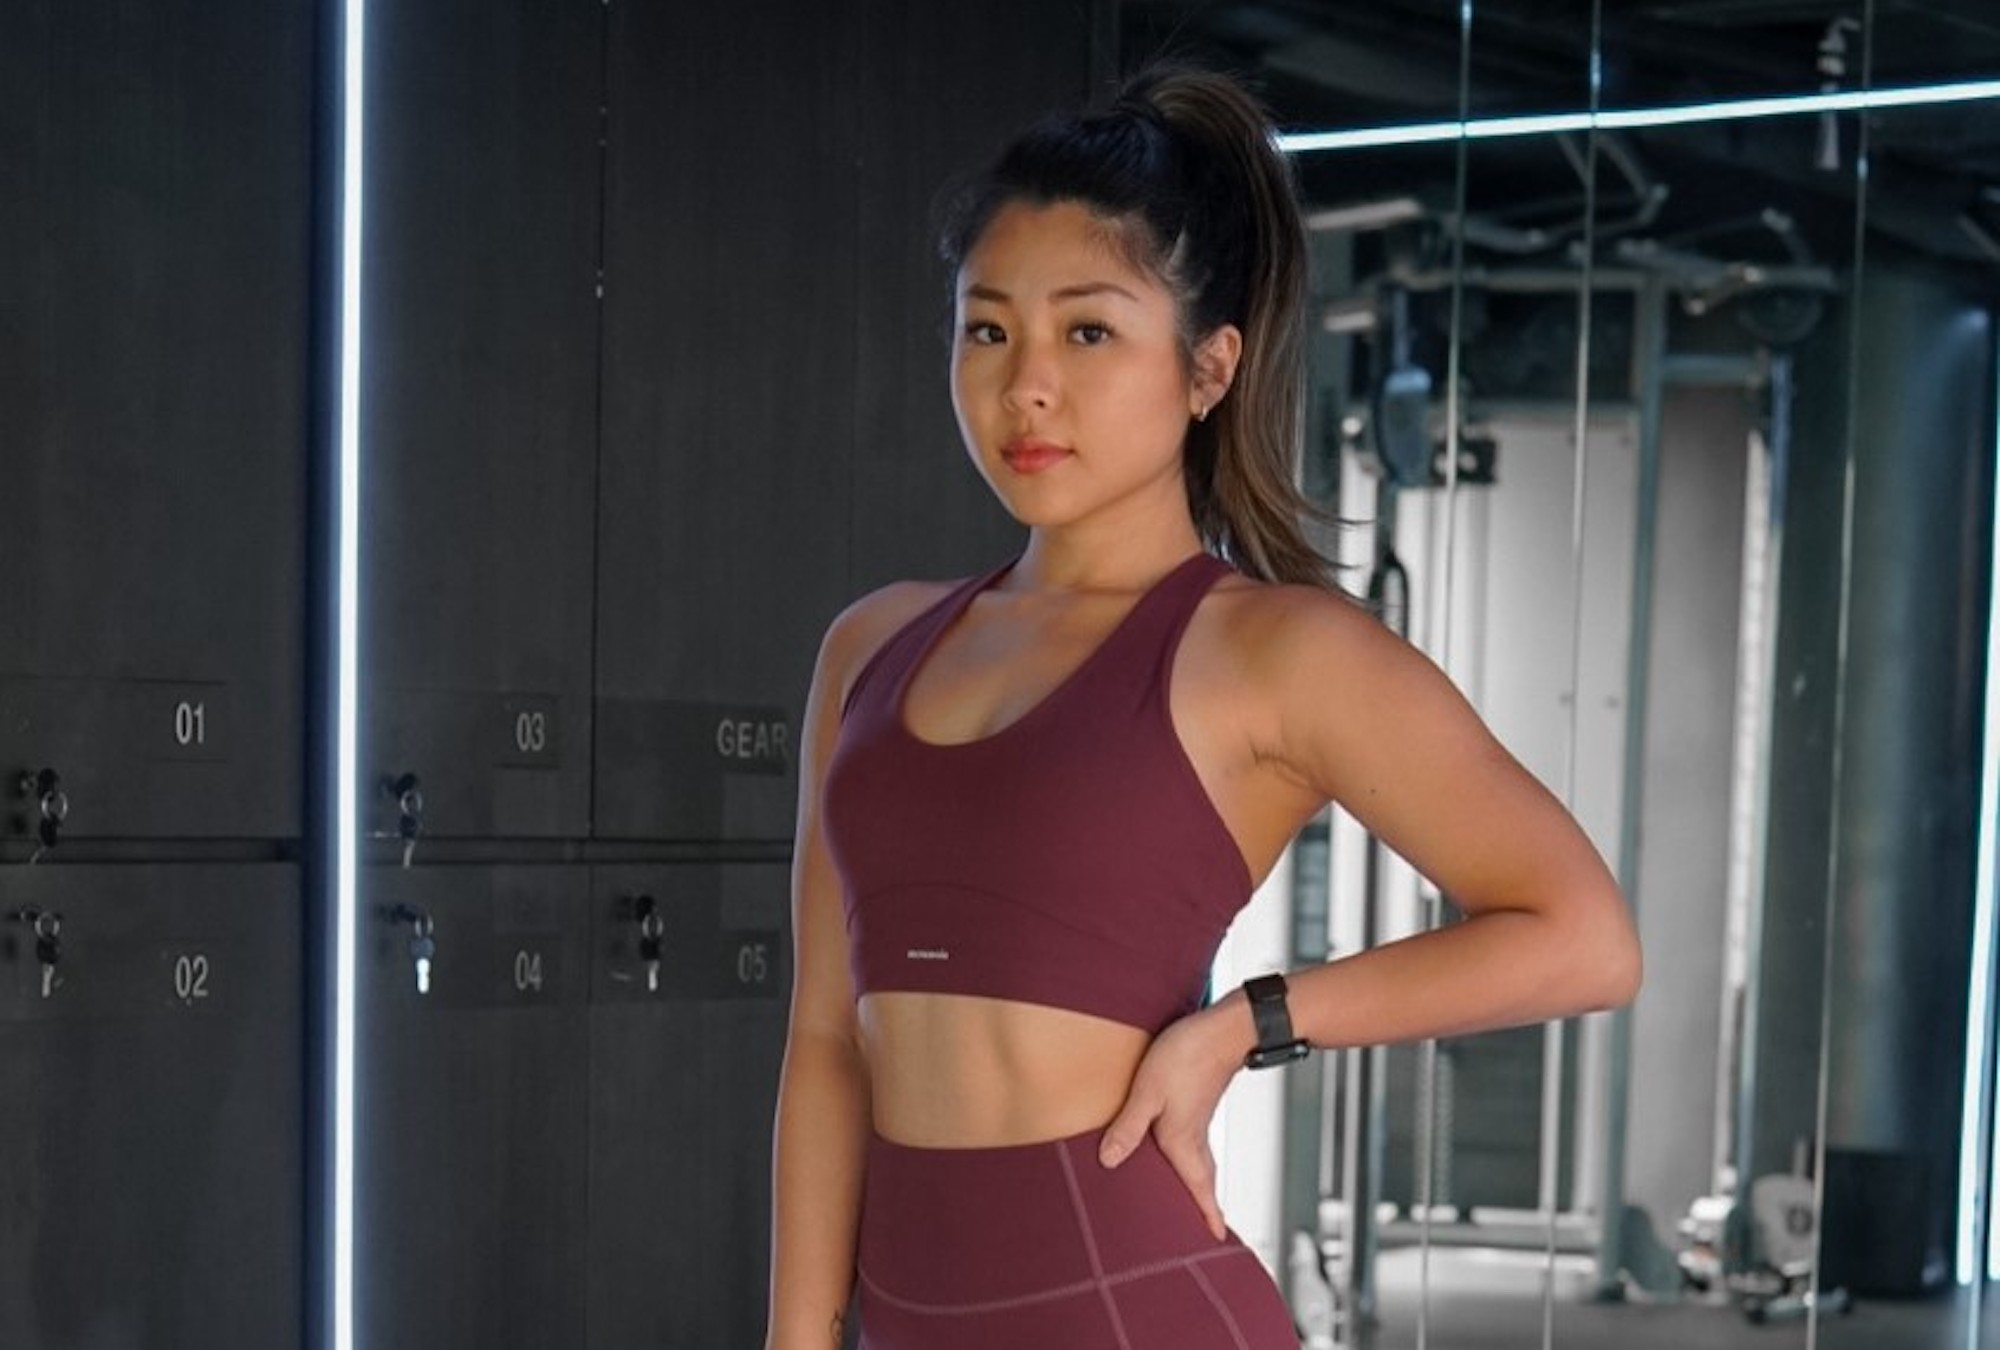 startup-life:-kayla-lau-on-her-athleisure-brand-metanoia-and-facing-her-trolls